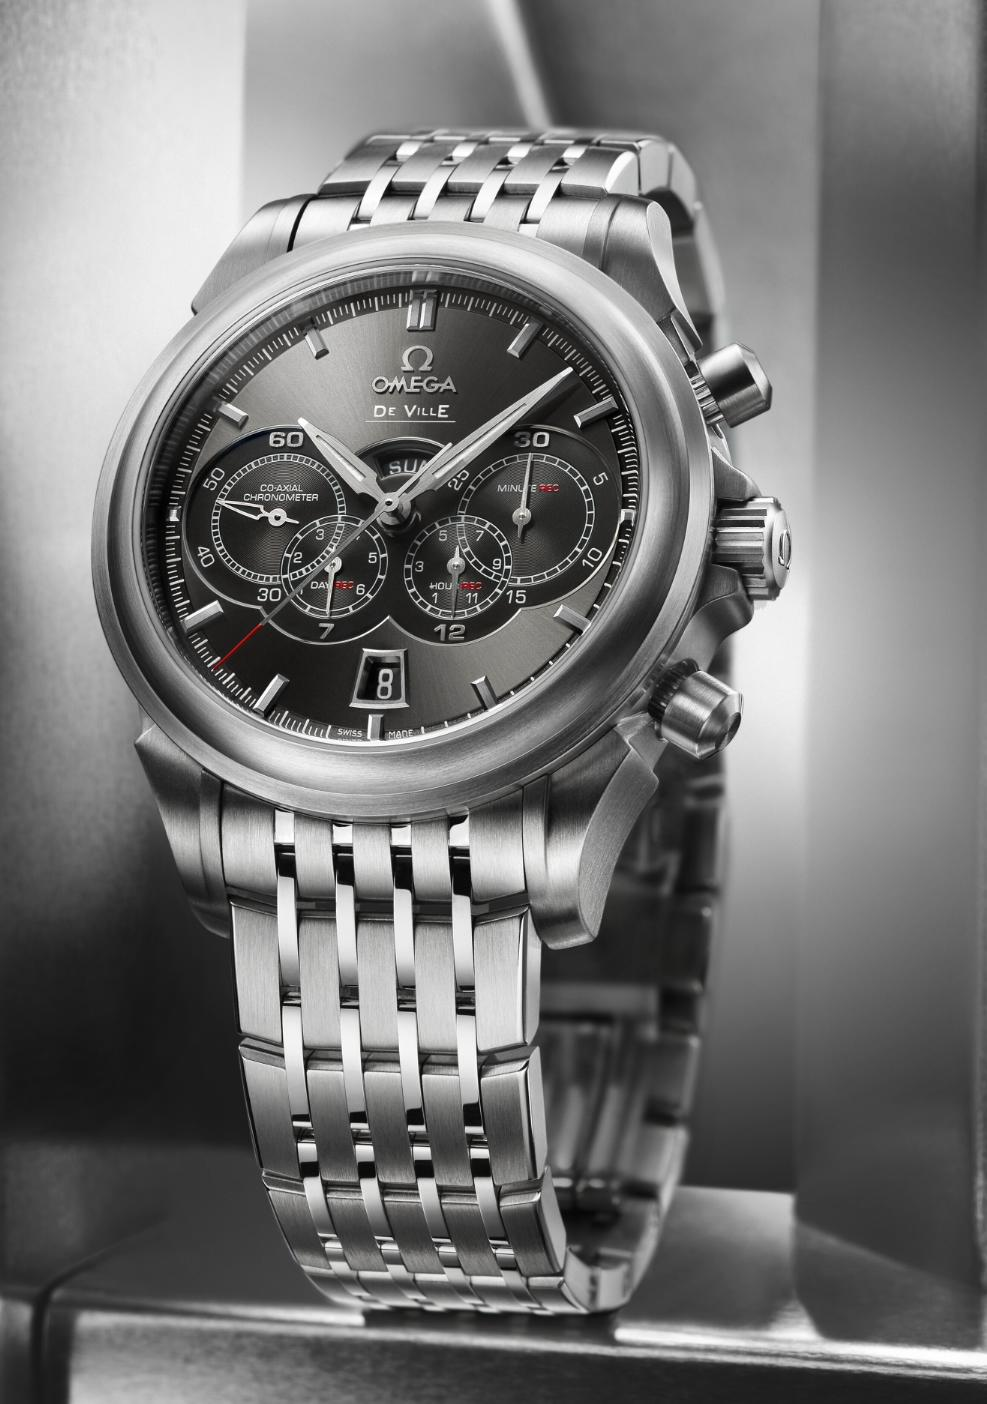 Omega - De Ville Co-Axial Chronograph